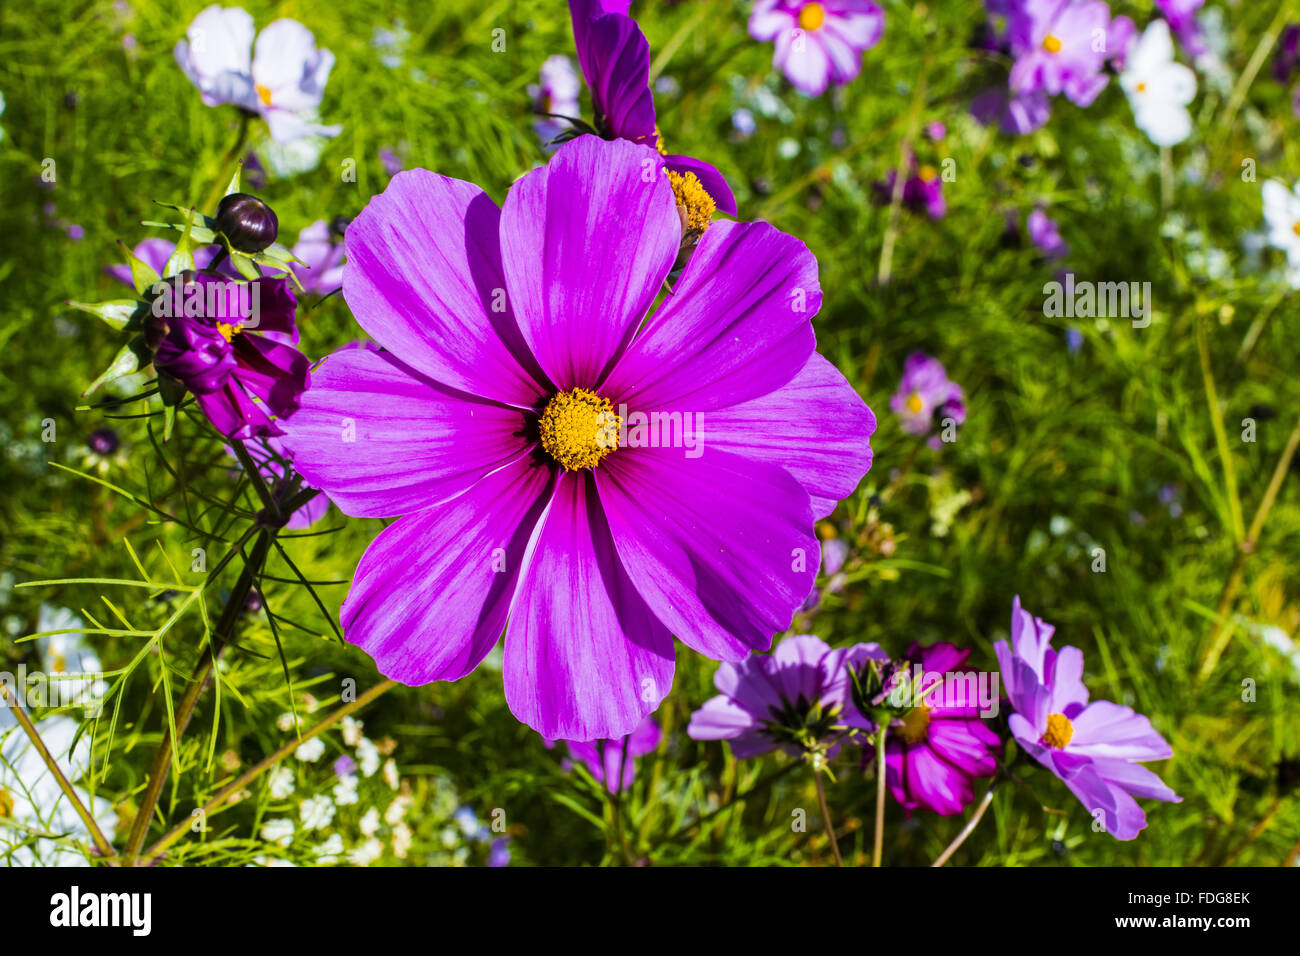 Large purple cosmos flower in a meadow. - Stock Image